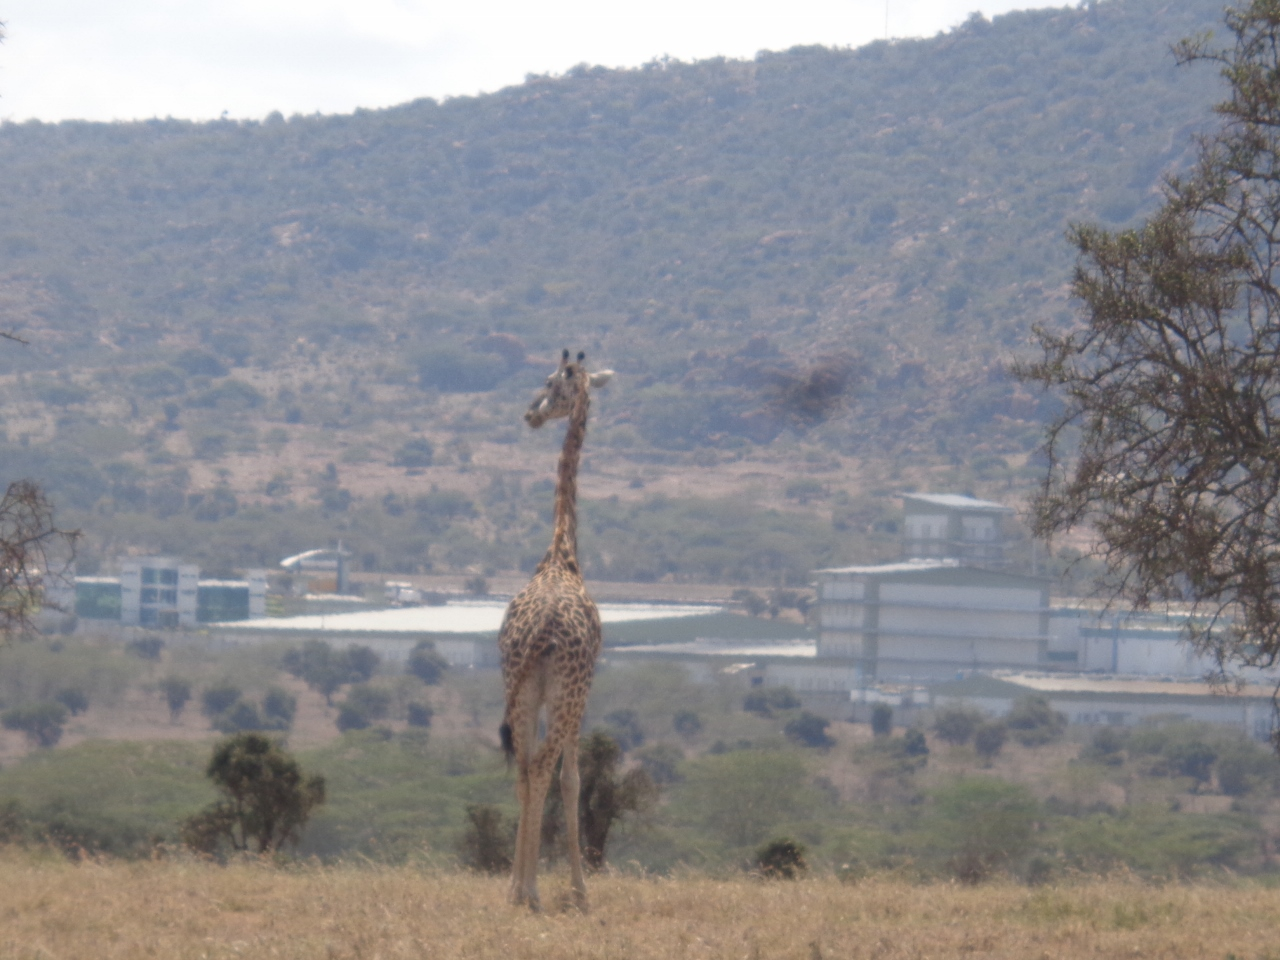 Masai giraffe looking at cement factory by Lukenya Hill on Athi-Kapiti plains outside Nairobi Copyright Rupi Mangat